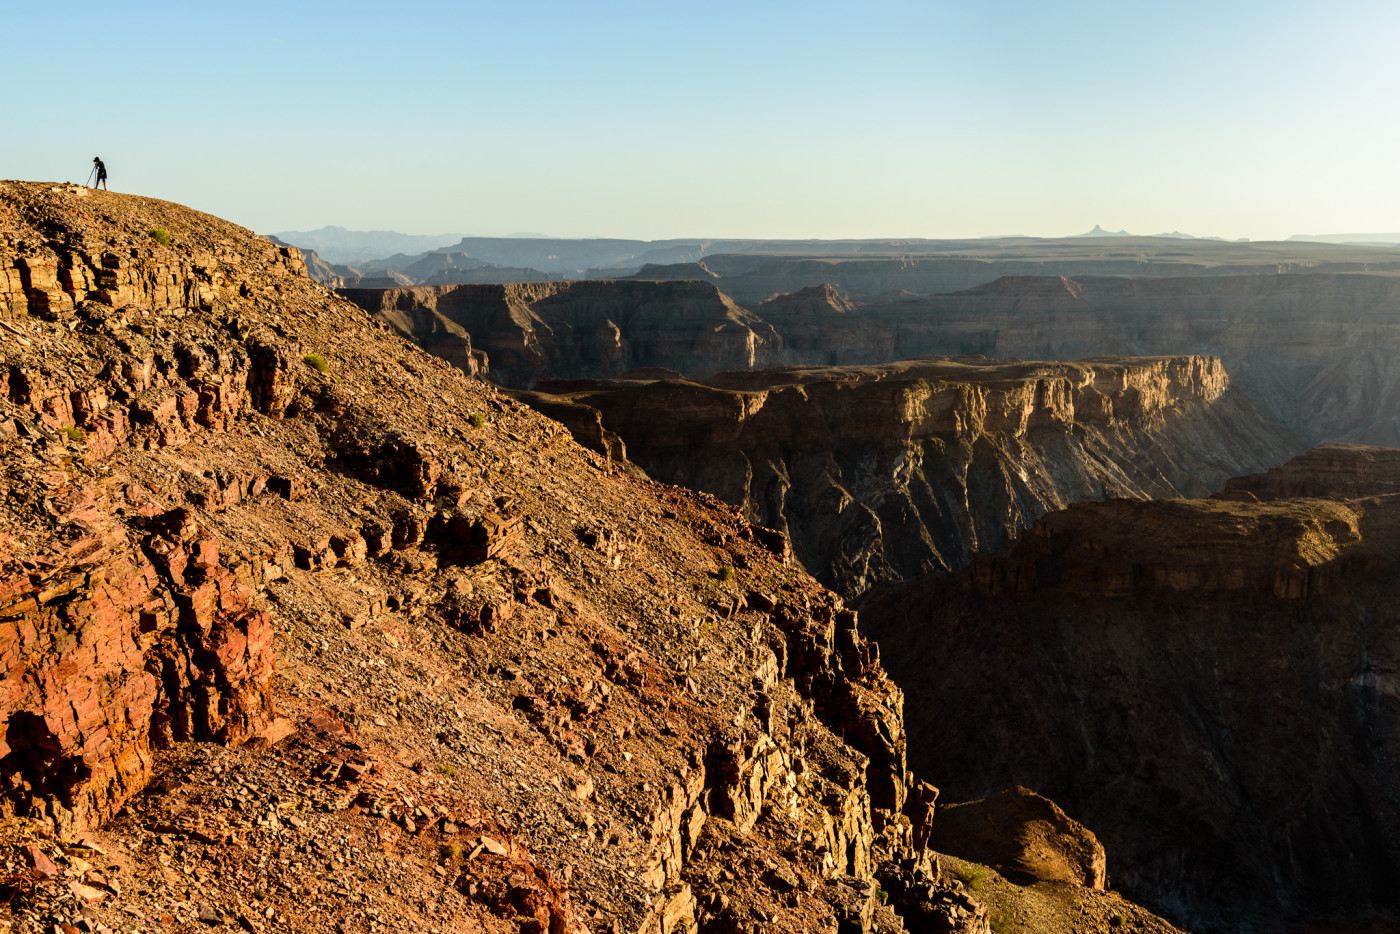 Fotograferen op de rand van Fish River Canyon